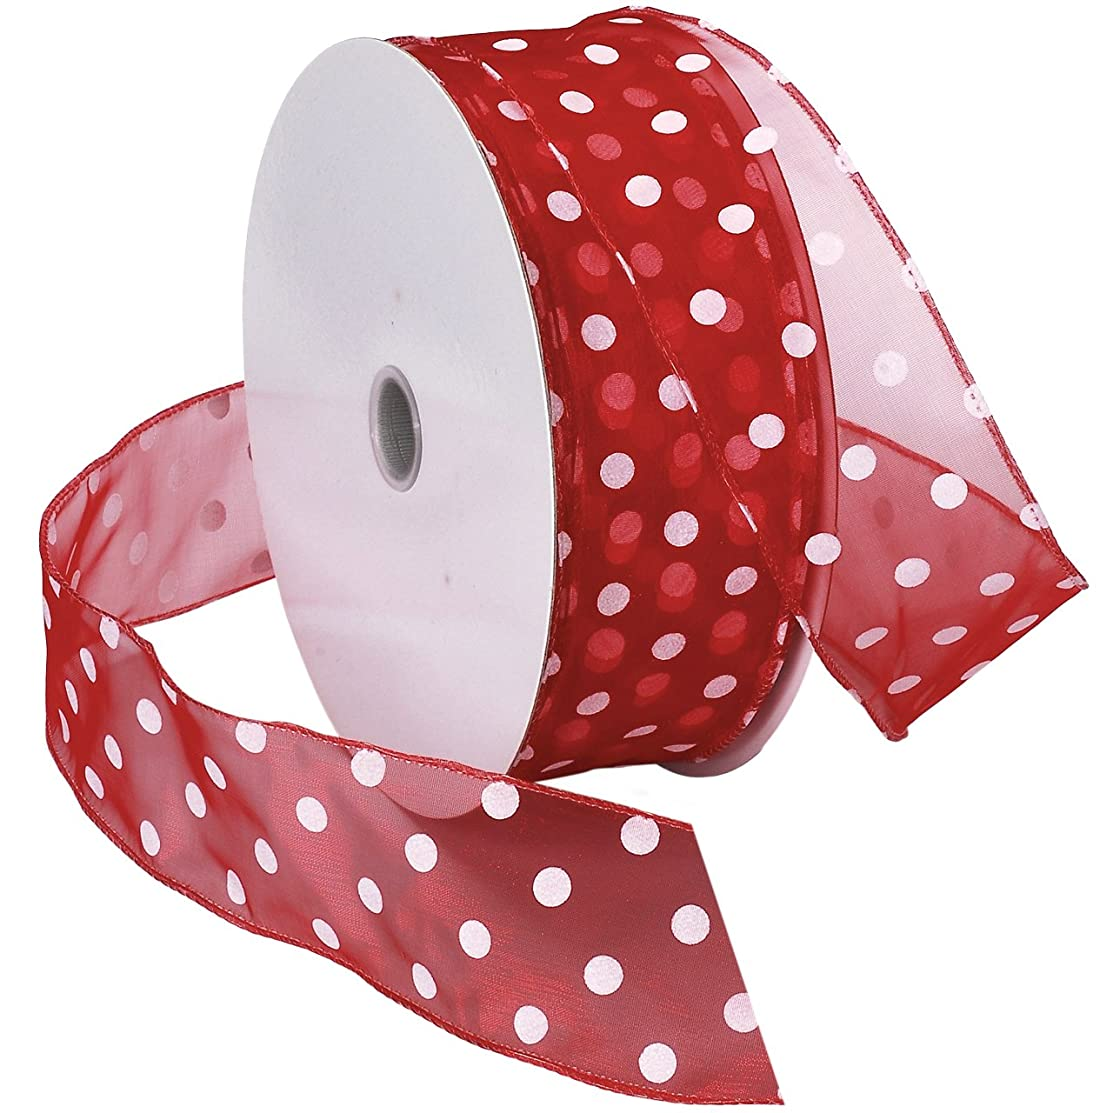 Morex Ribbon Wired Sheer Dots Fabric Ribbon, 2-Inch by 50-Yard Spool, Red/White Dots